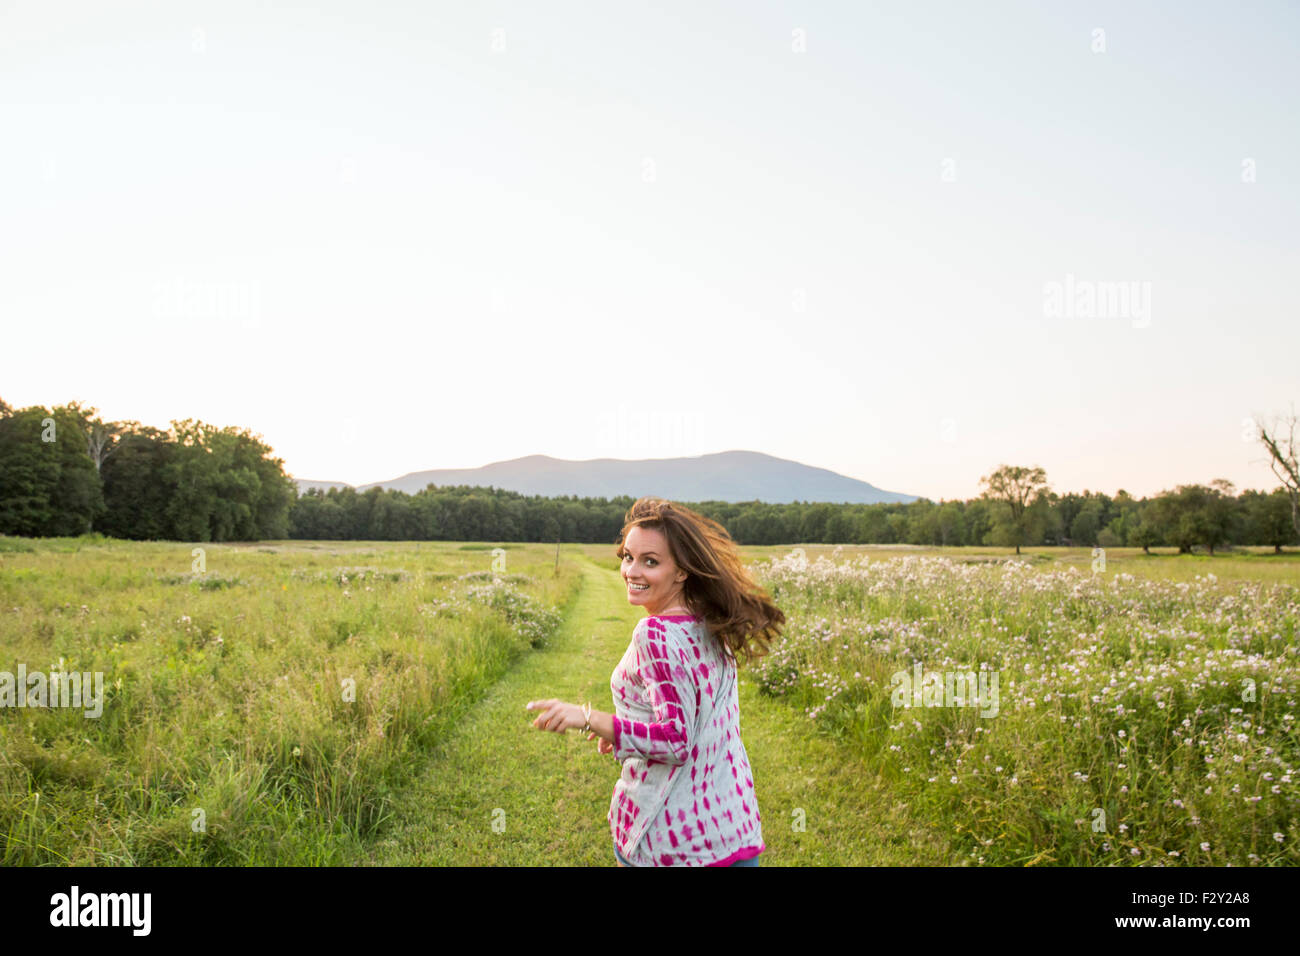 Woman running along a path in a meadow, looking over her shoulder. - Stock Image